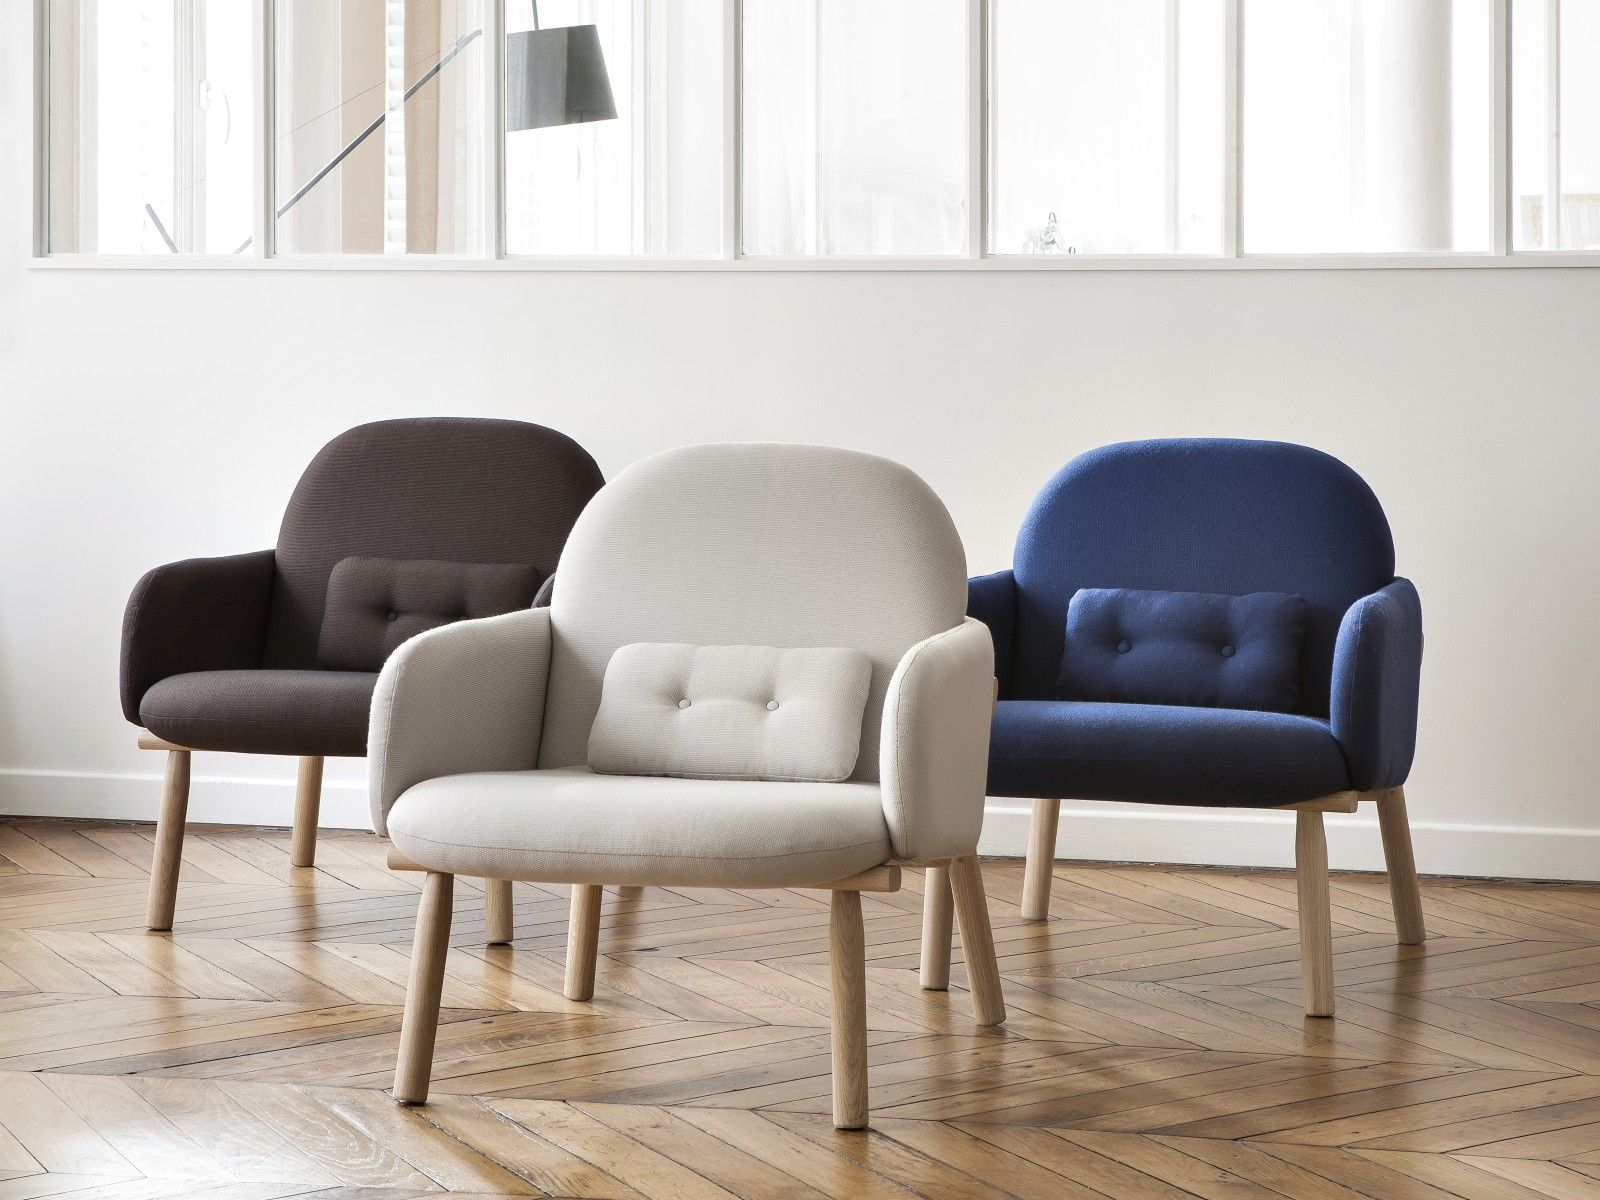 Pin by F an on Lounge chair | Lounge armchair, Armchairs ...